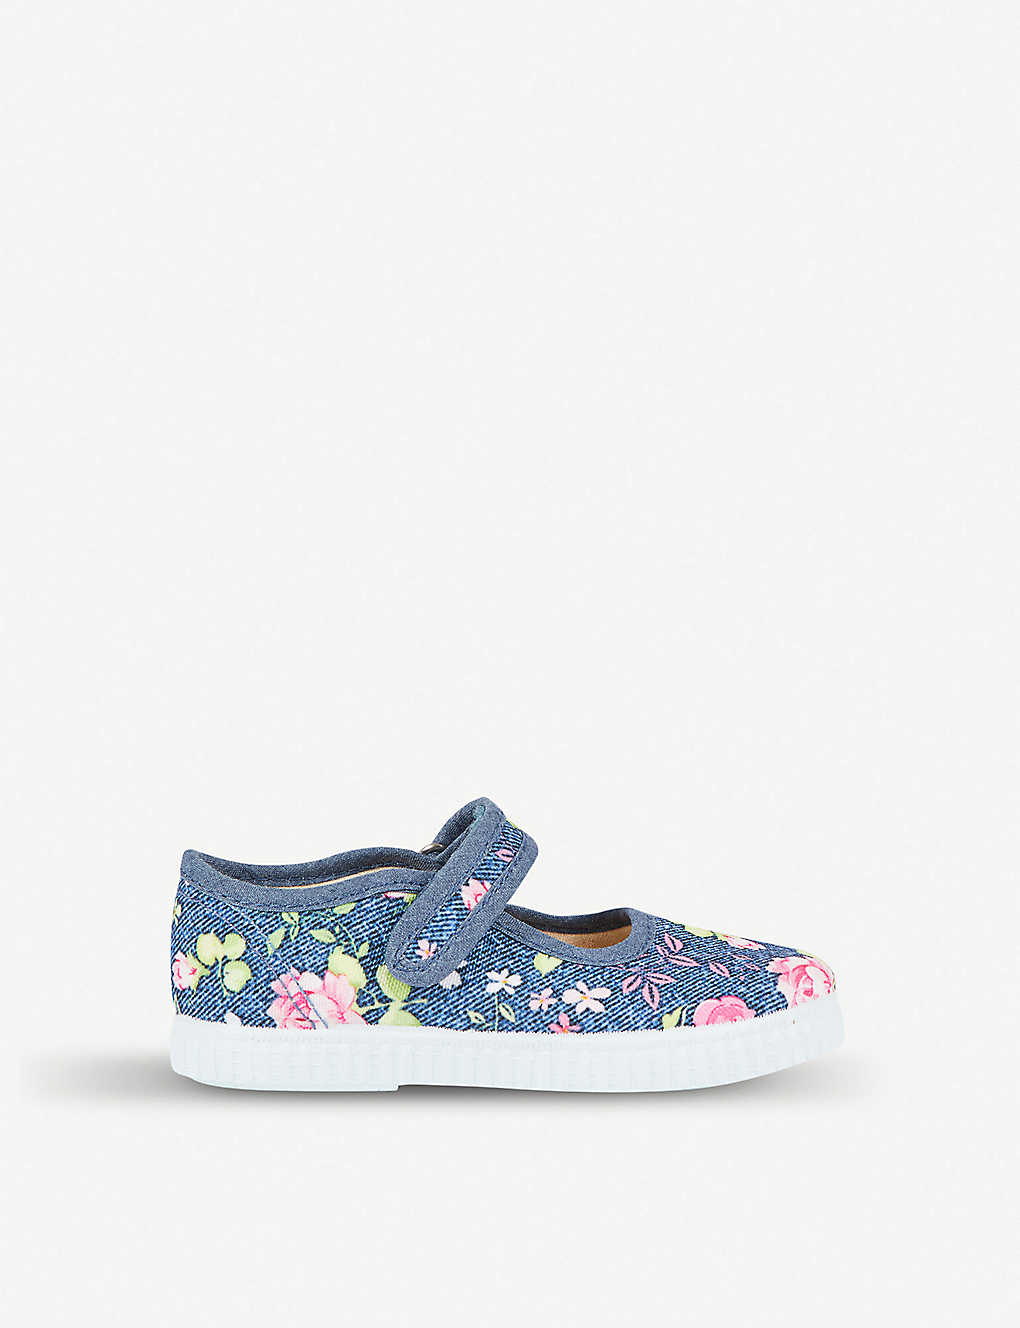 055c15fc532a STEP2WO - Rosita floral-embroidered canvas shoes 3-7 years ...